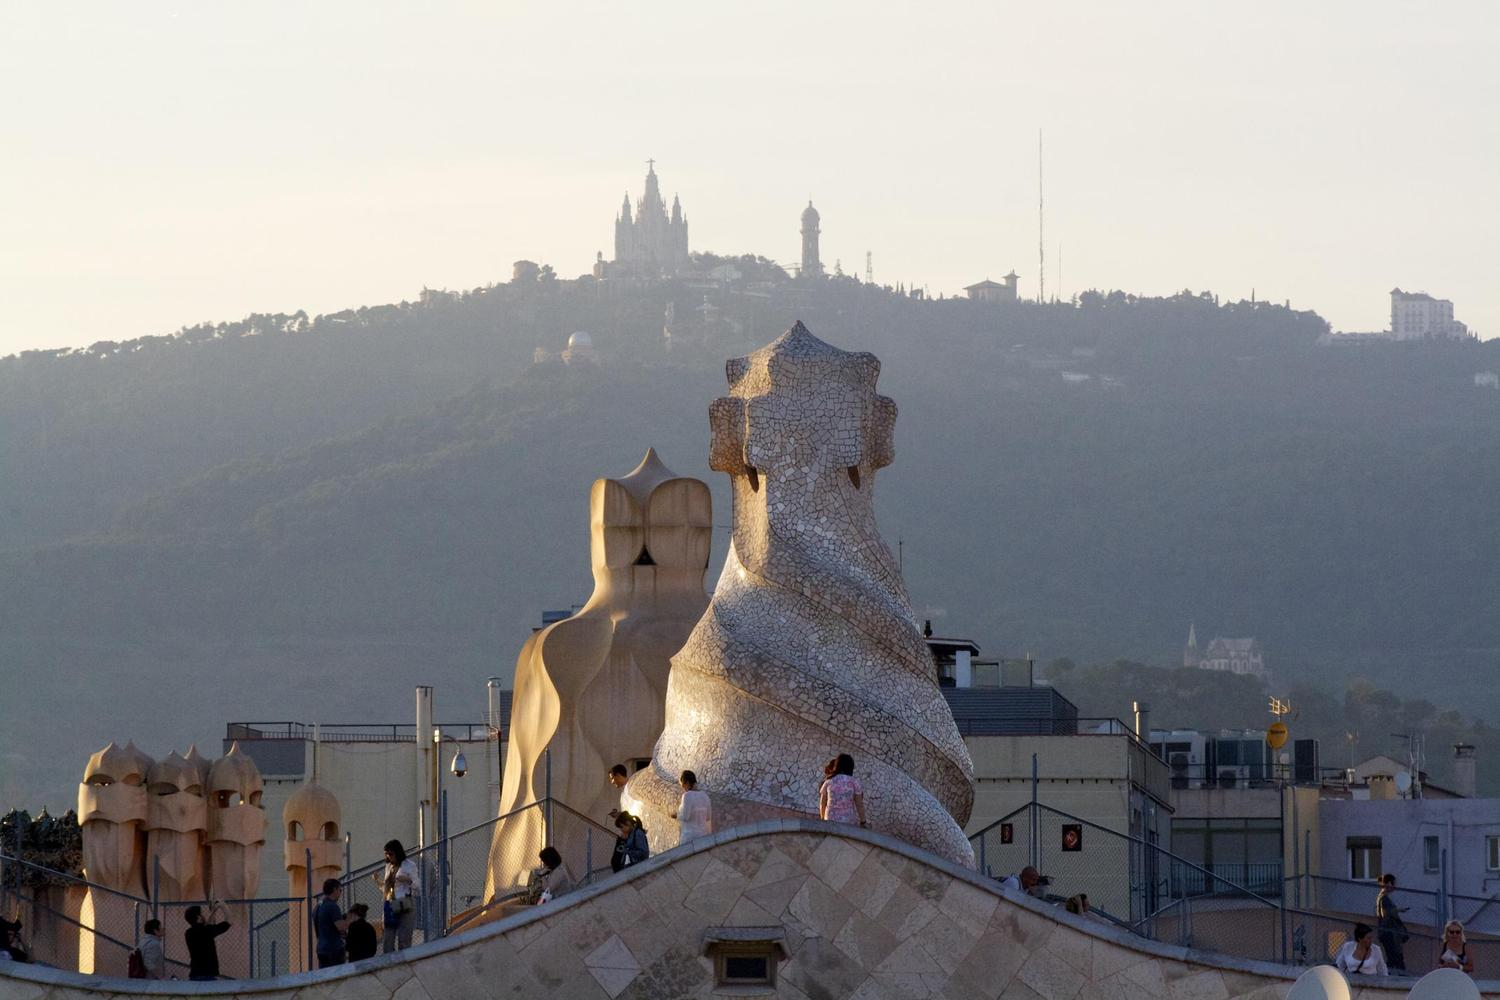 Views across the Pedrera to Tibidabo hill, Barcelona